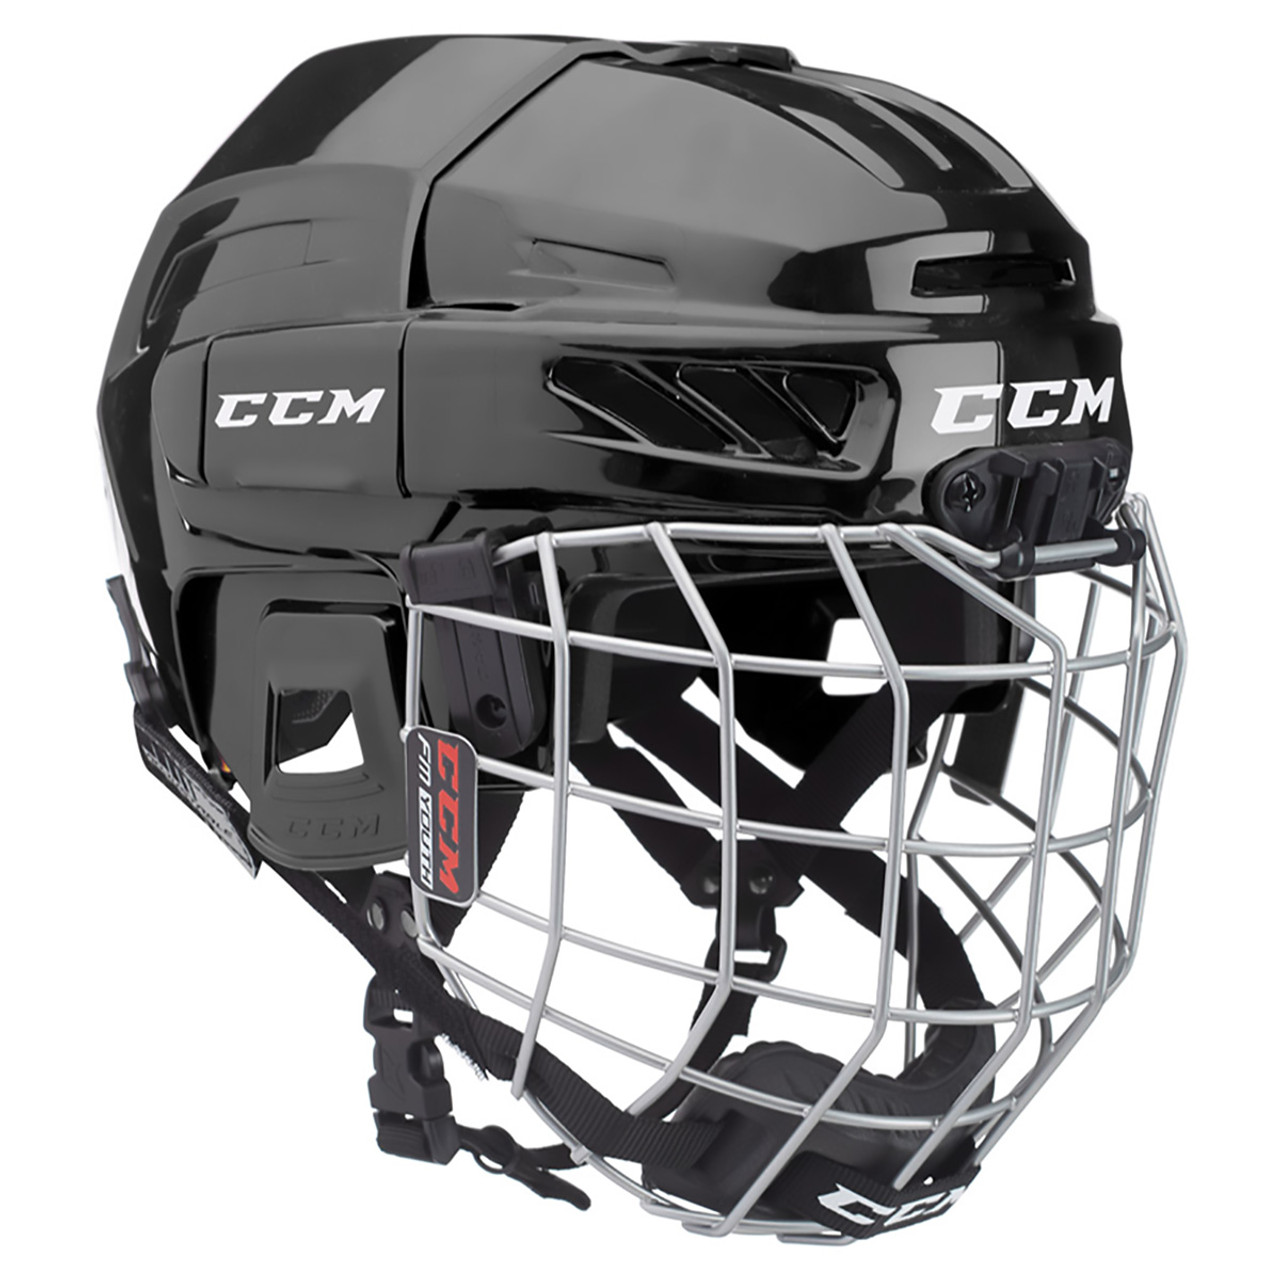 e2efd83669e CCM FitLite FL3DS Combo Junior Hockey Helmet - Various Colors ...